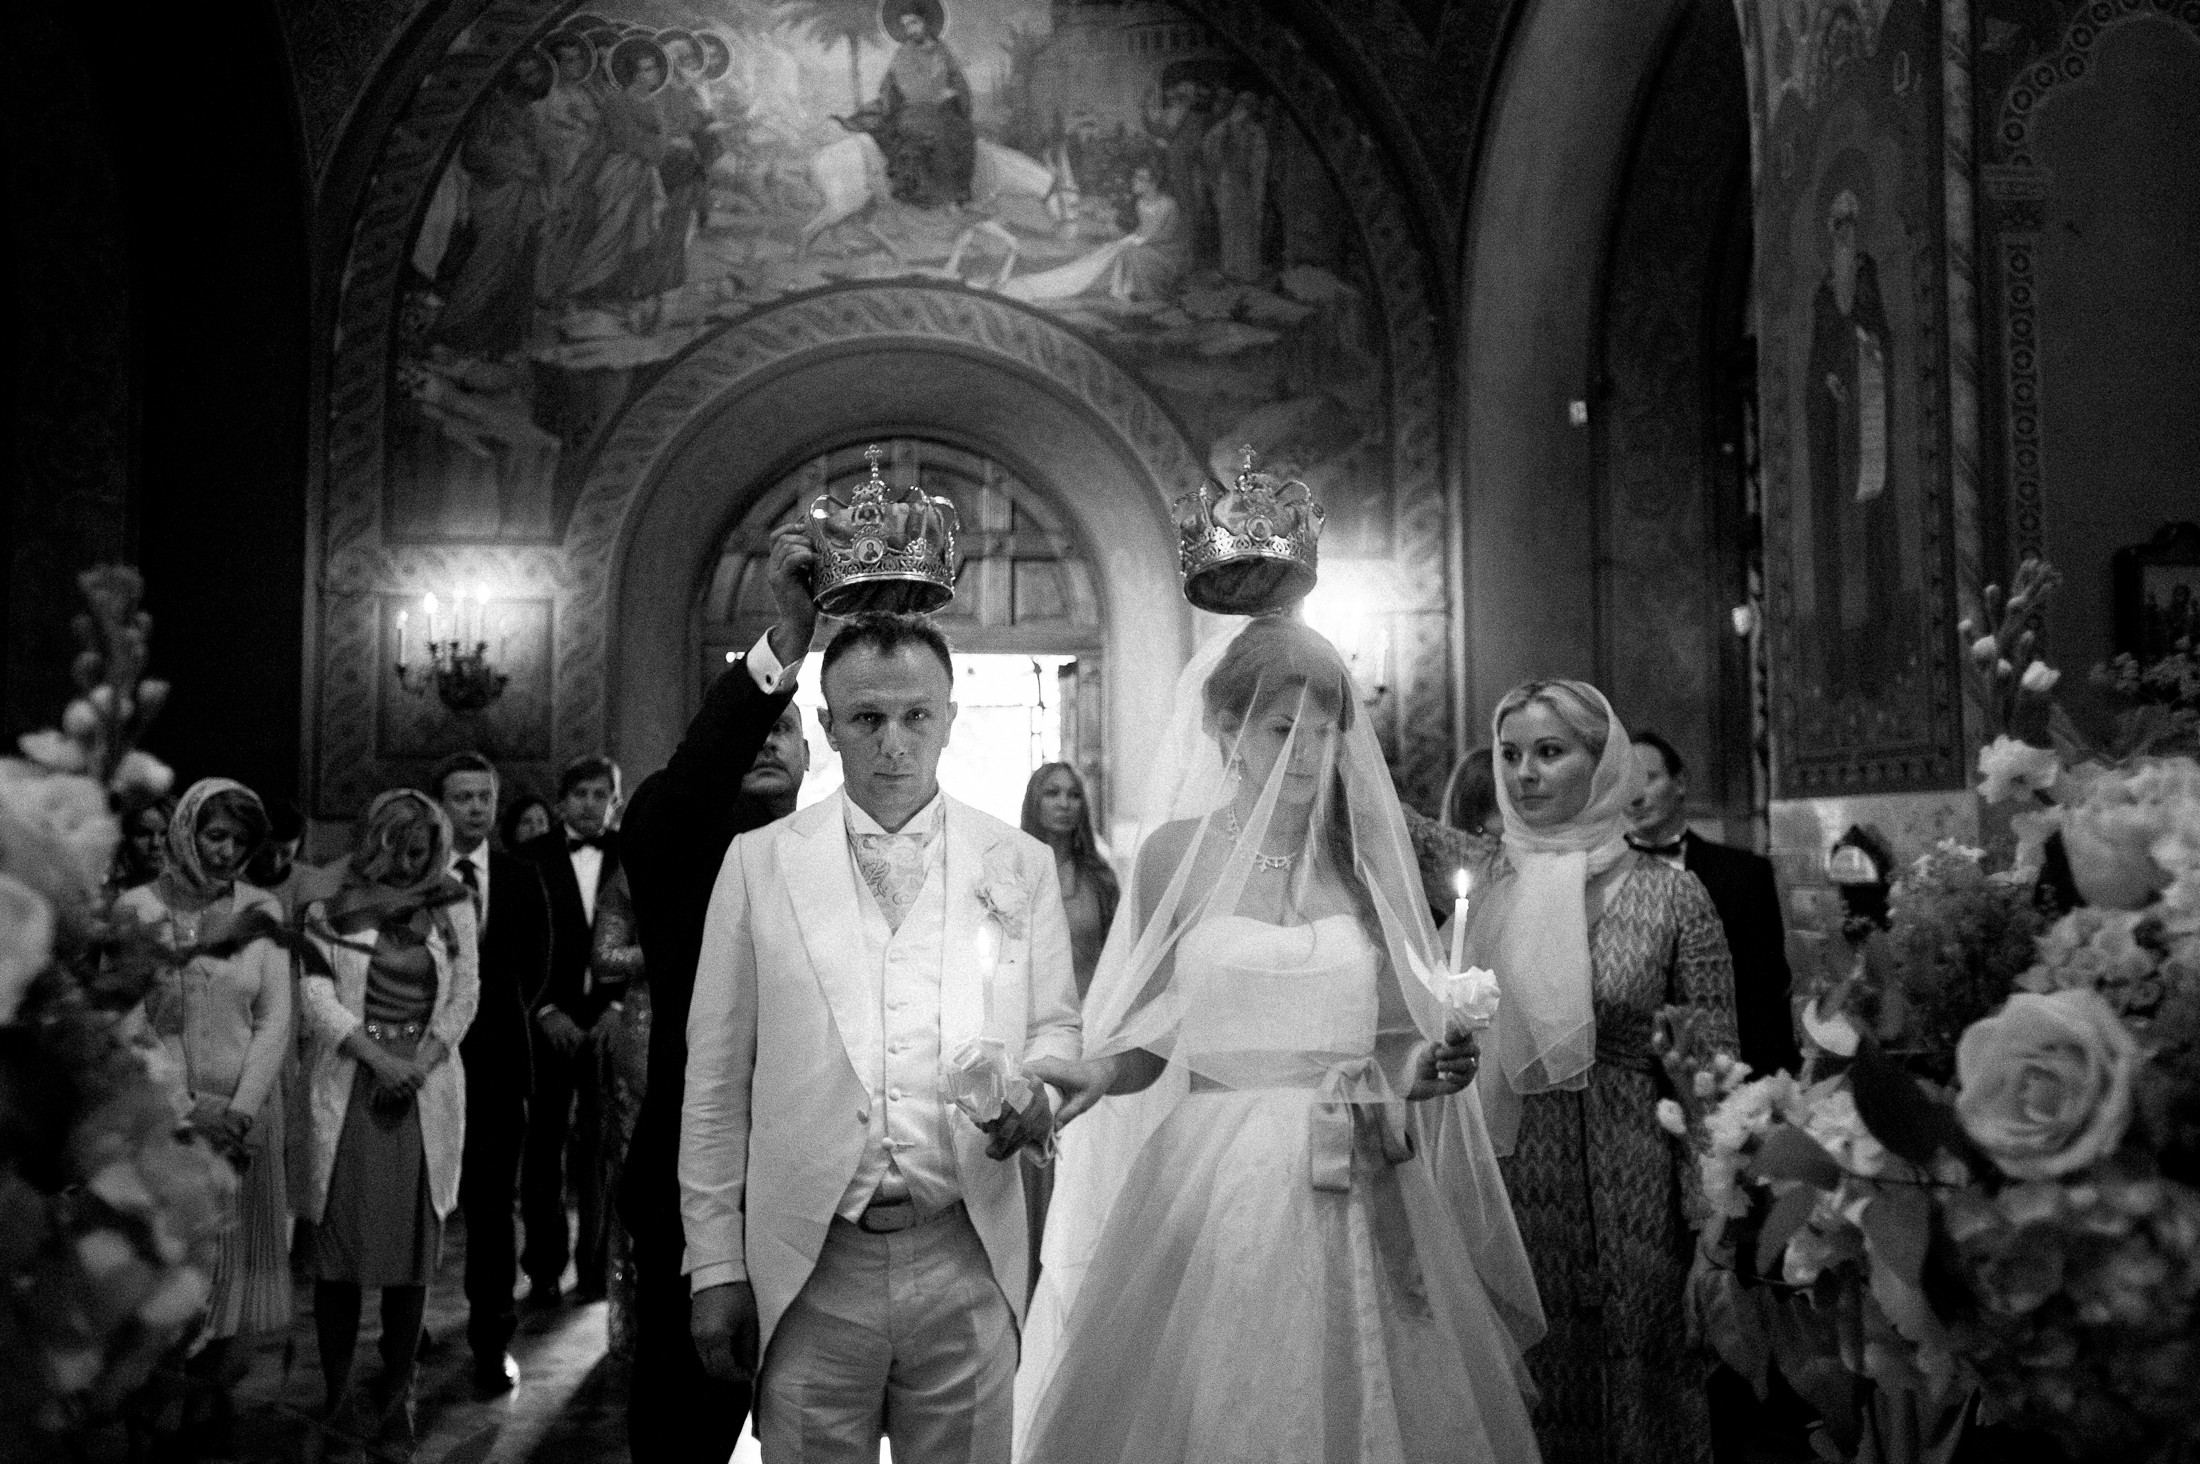 bride and groom during the wedding ceremony black and white